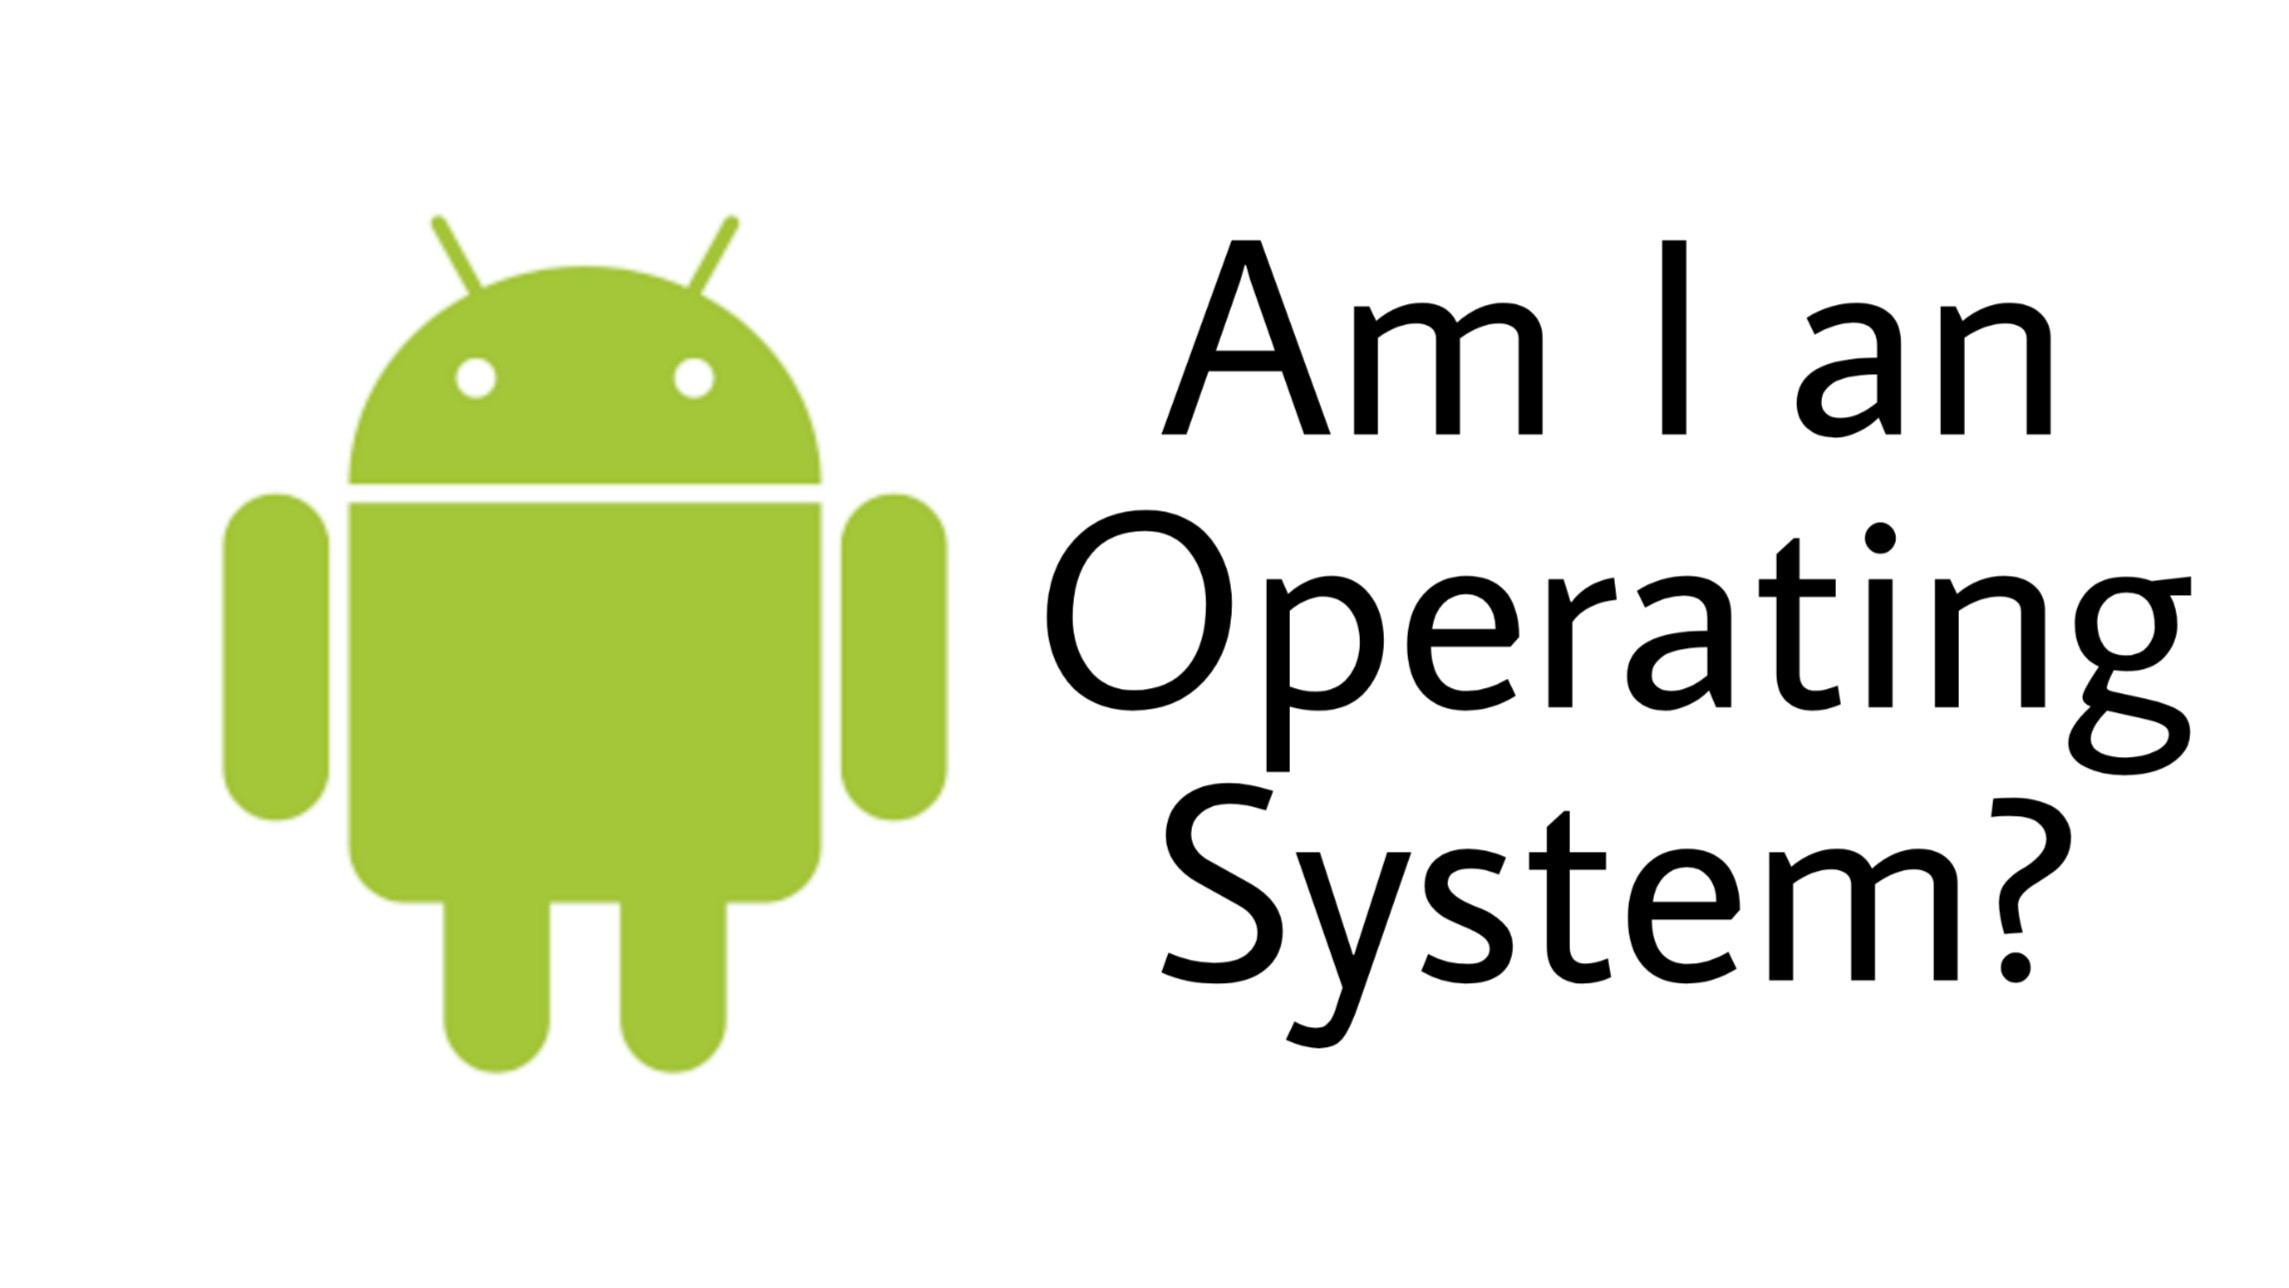 Is Android a Operating system